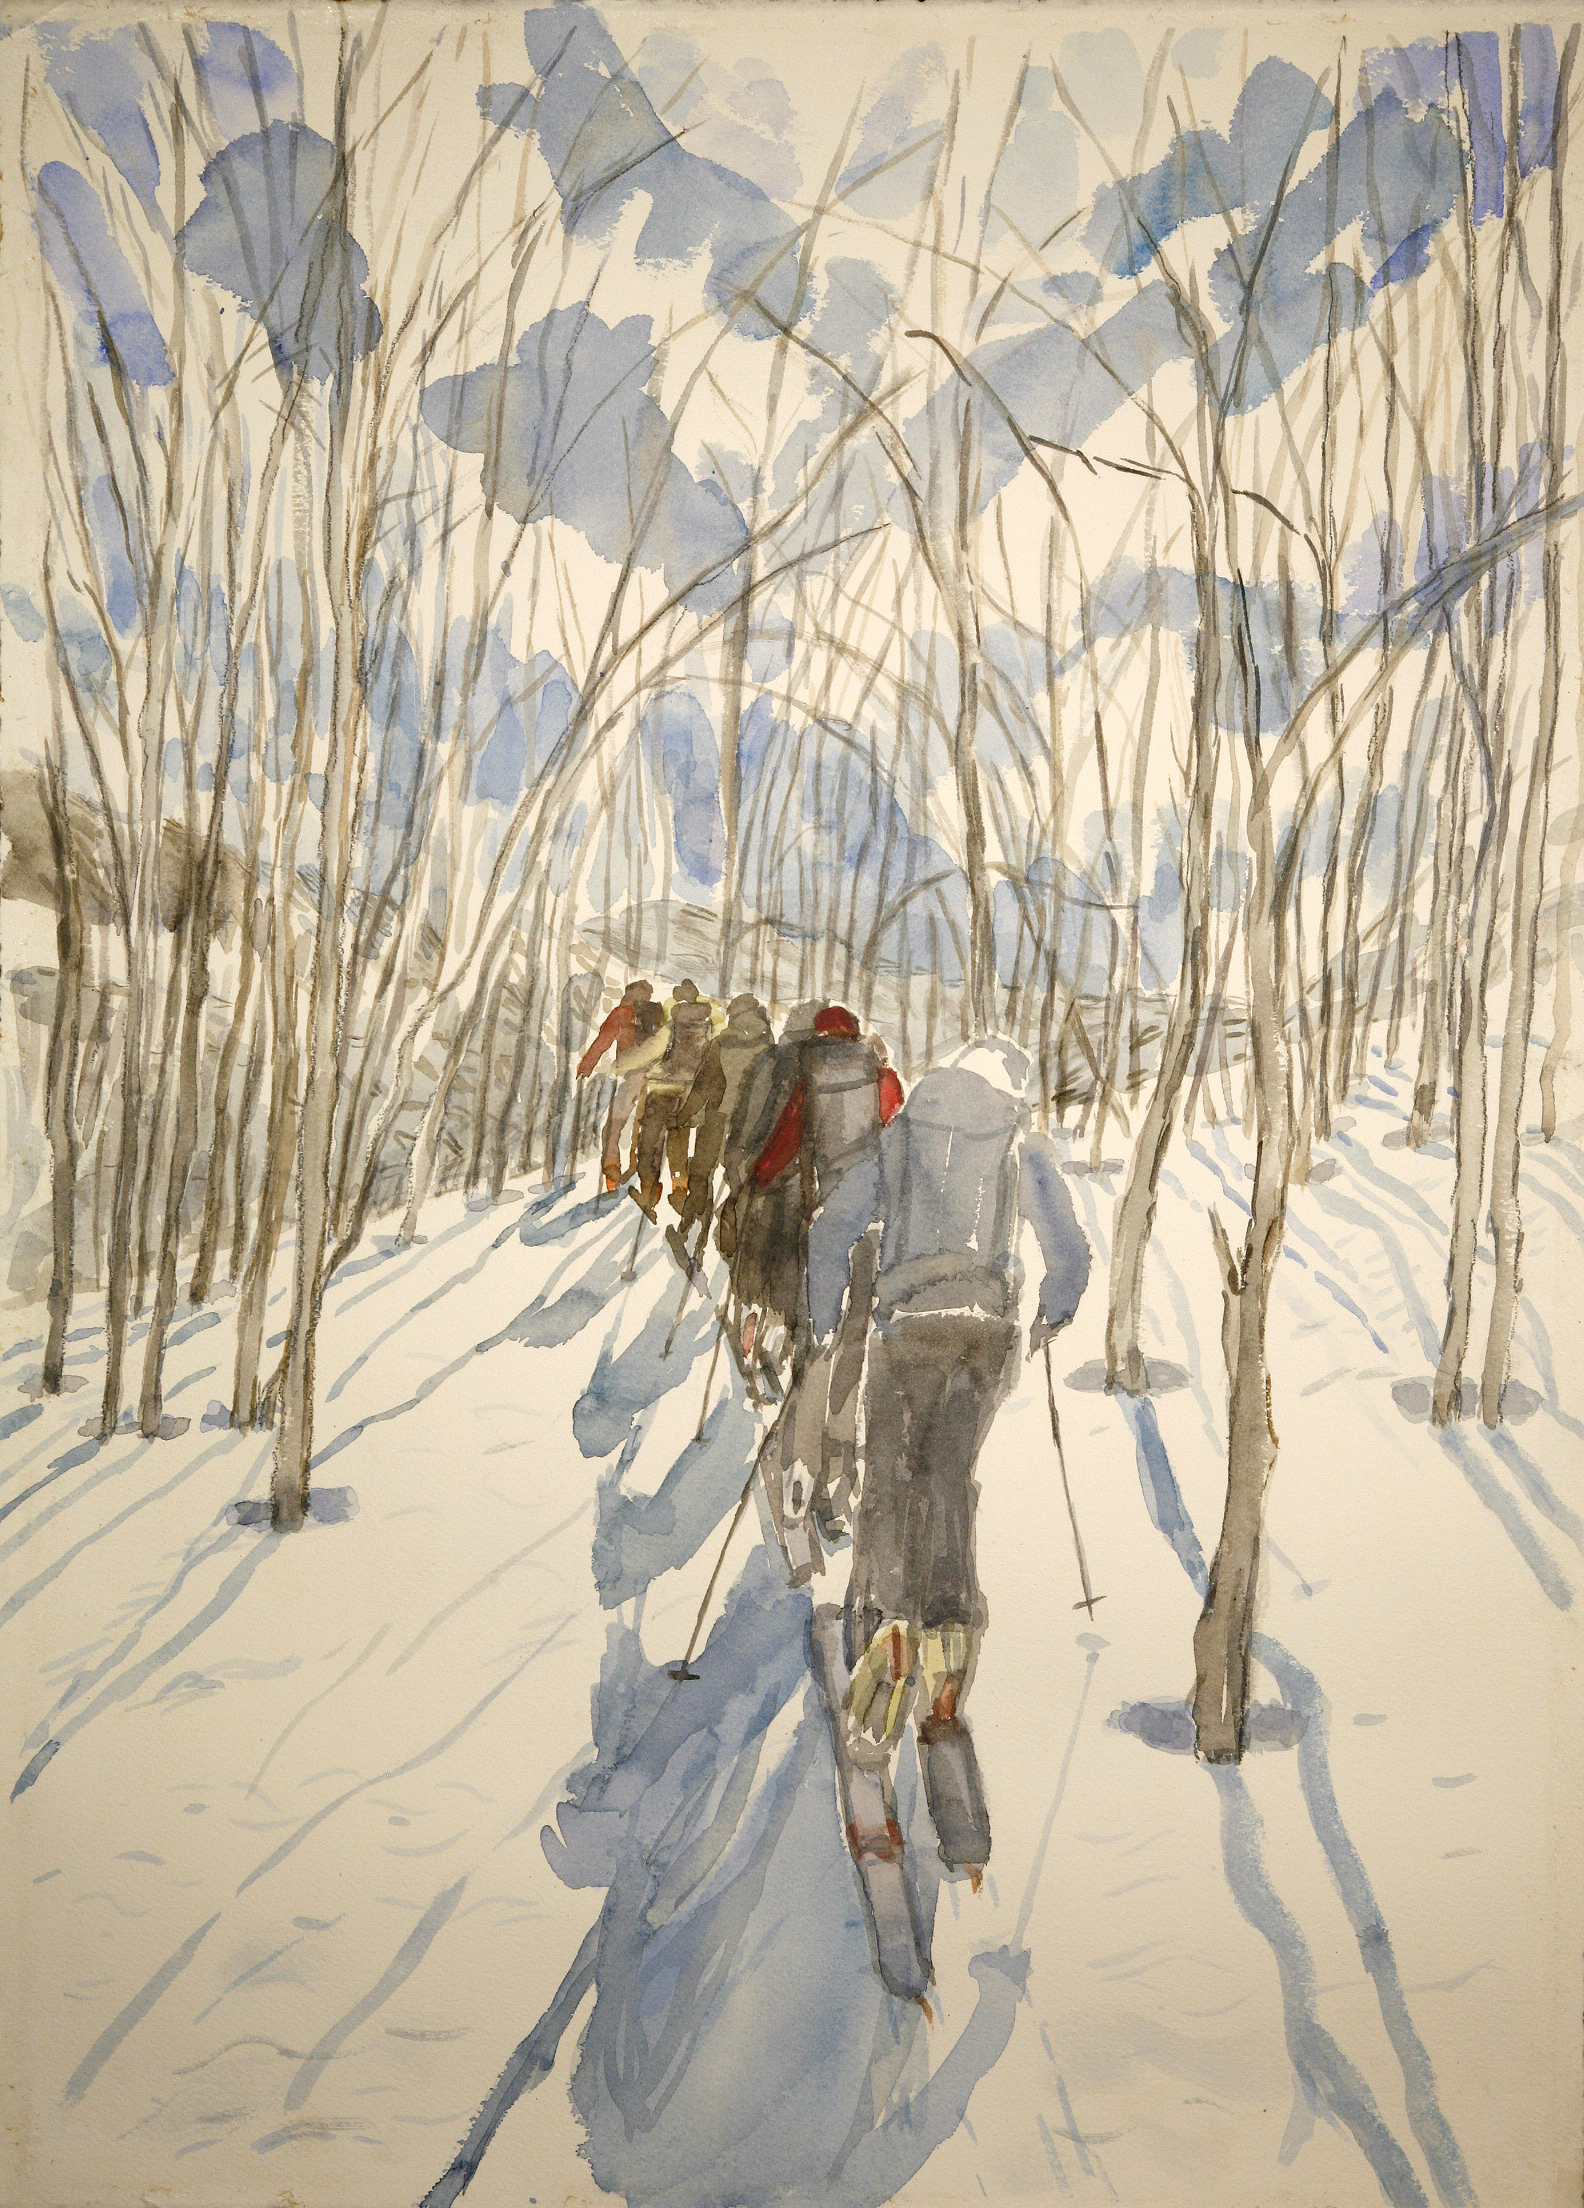 Skinning to the birches Jokelfjord skiing painting ski Norway